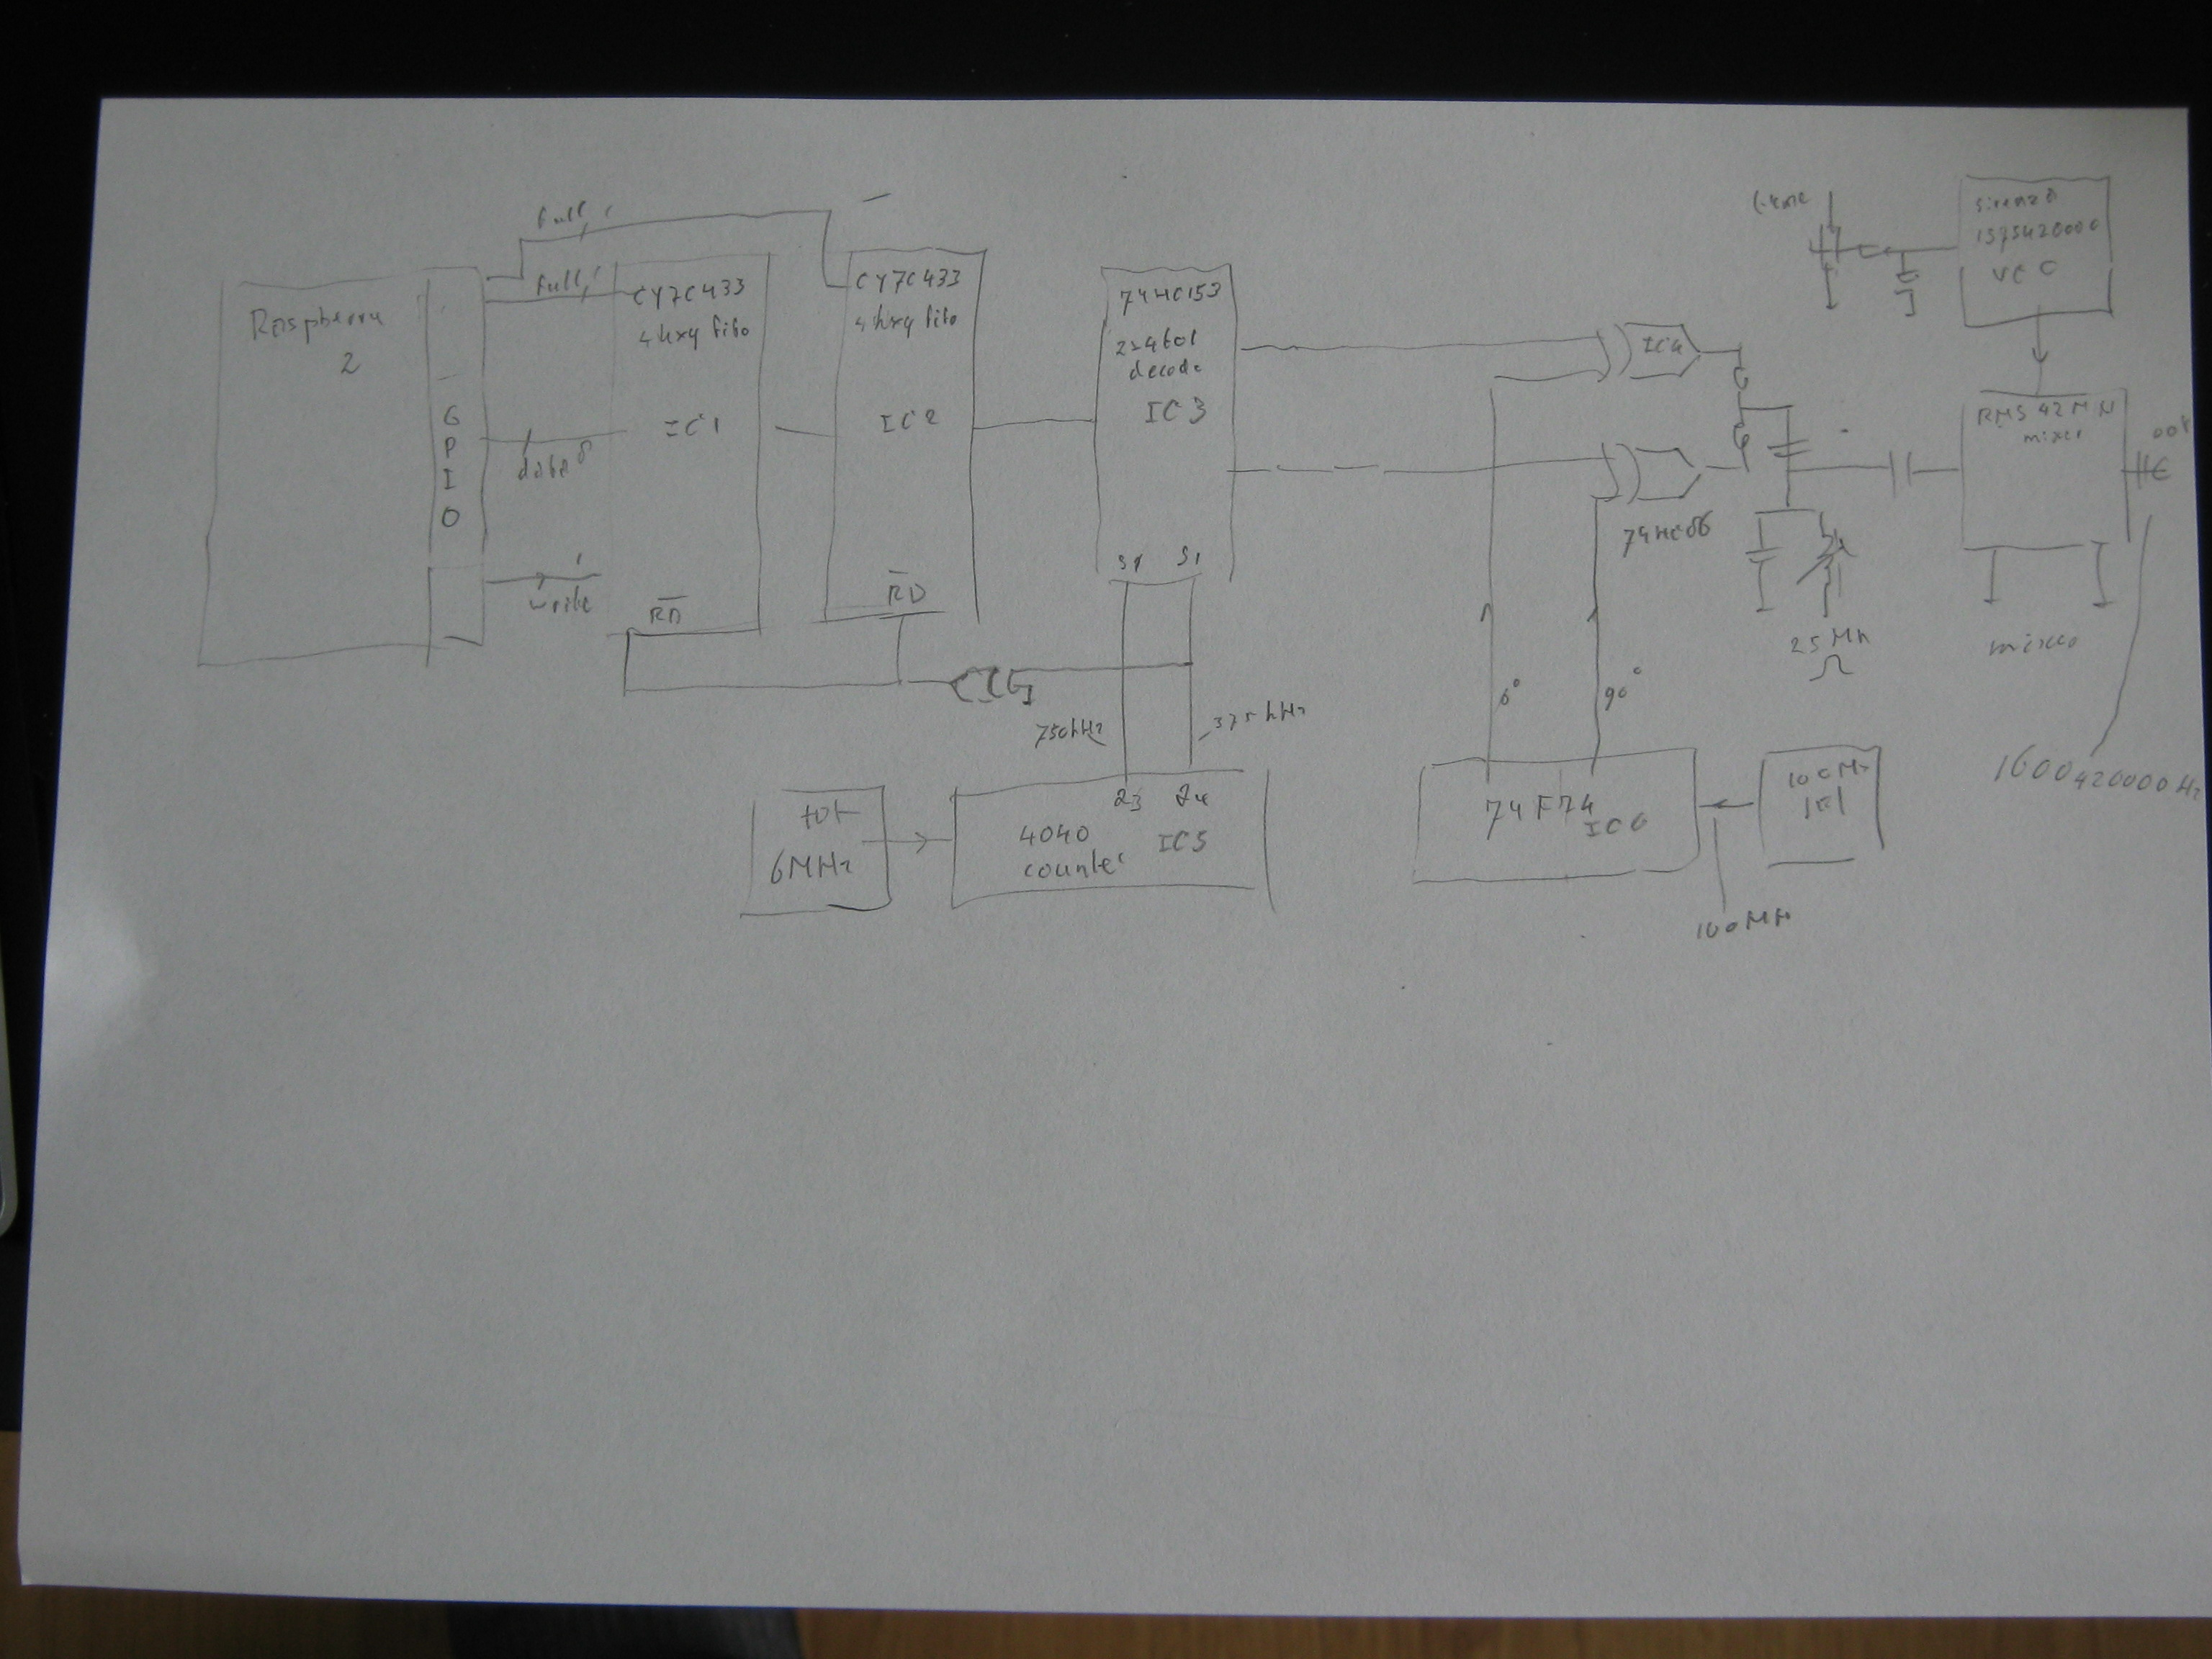 Raspberry Pi As Digital Dvb S Tv Transmitter T Circuit Diagram The Failed To Load Image Http Panteltjecom Pub Datv Img 3943